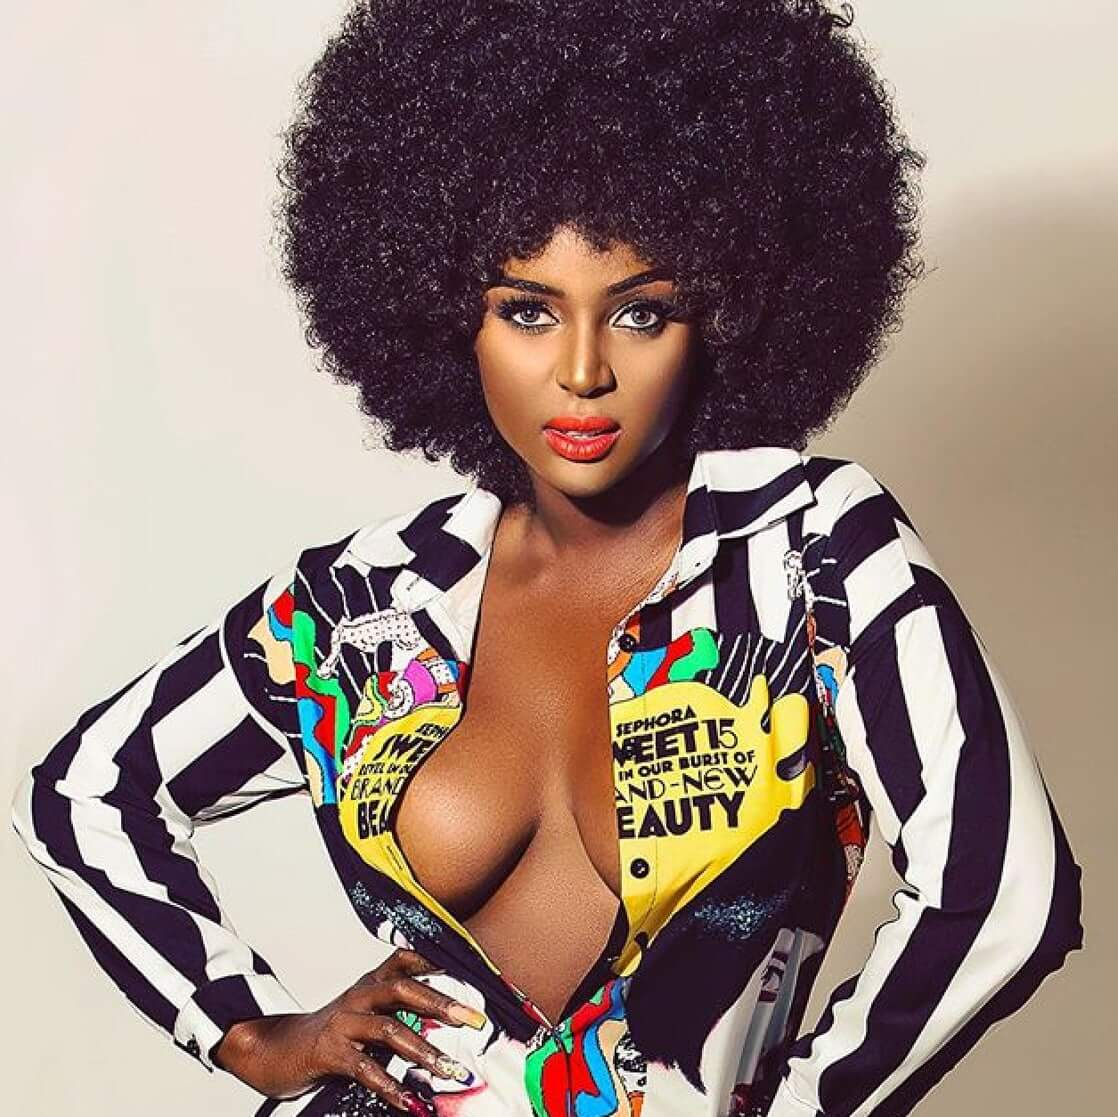 Amara La Negra Naked 49 hot pictures of amara la negra which will make your mouth